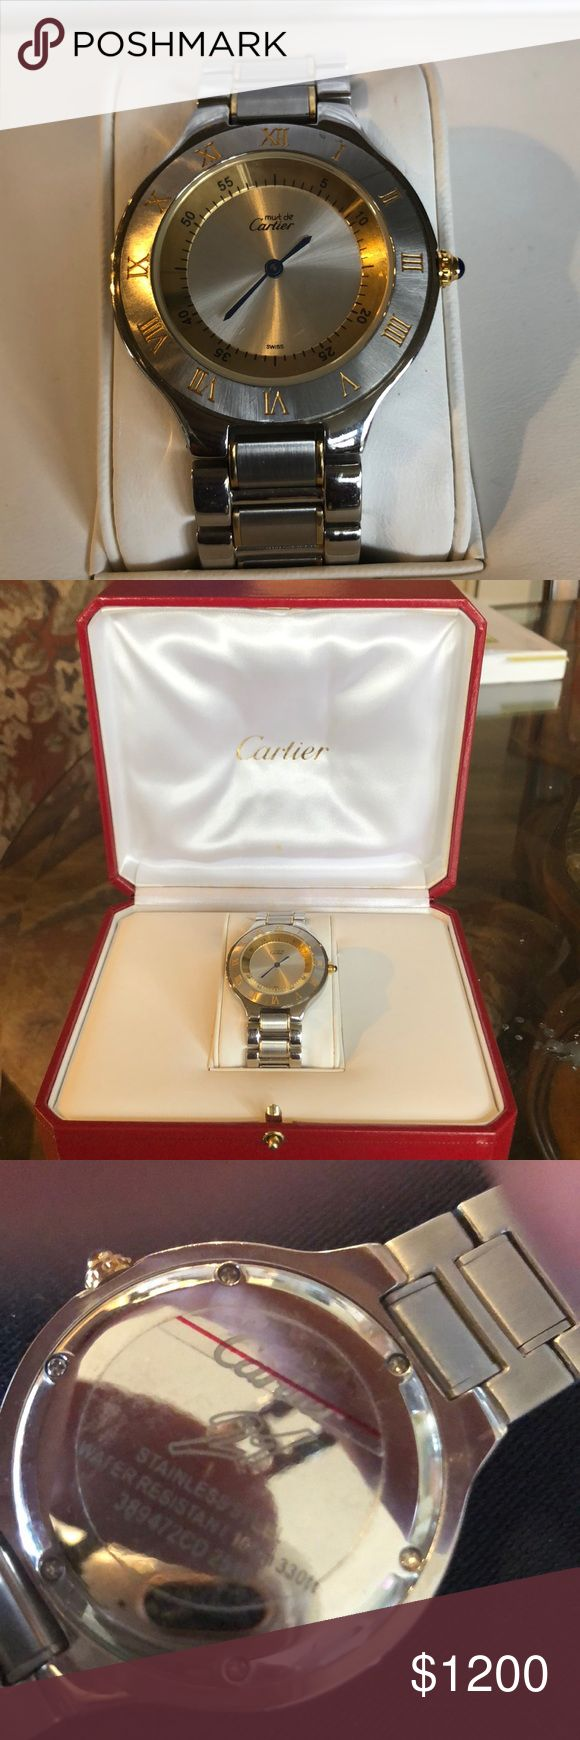 Cartier watch with box. Authentic Used authentic Cartier watch, used. NEEDS BATTERY. Cartier Accessories Watches